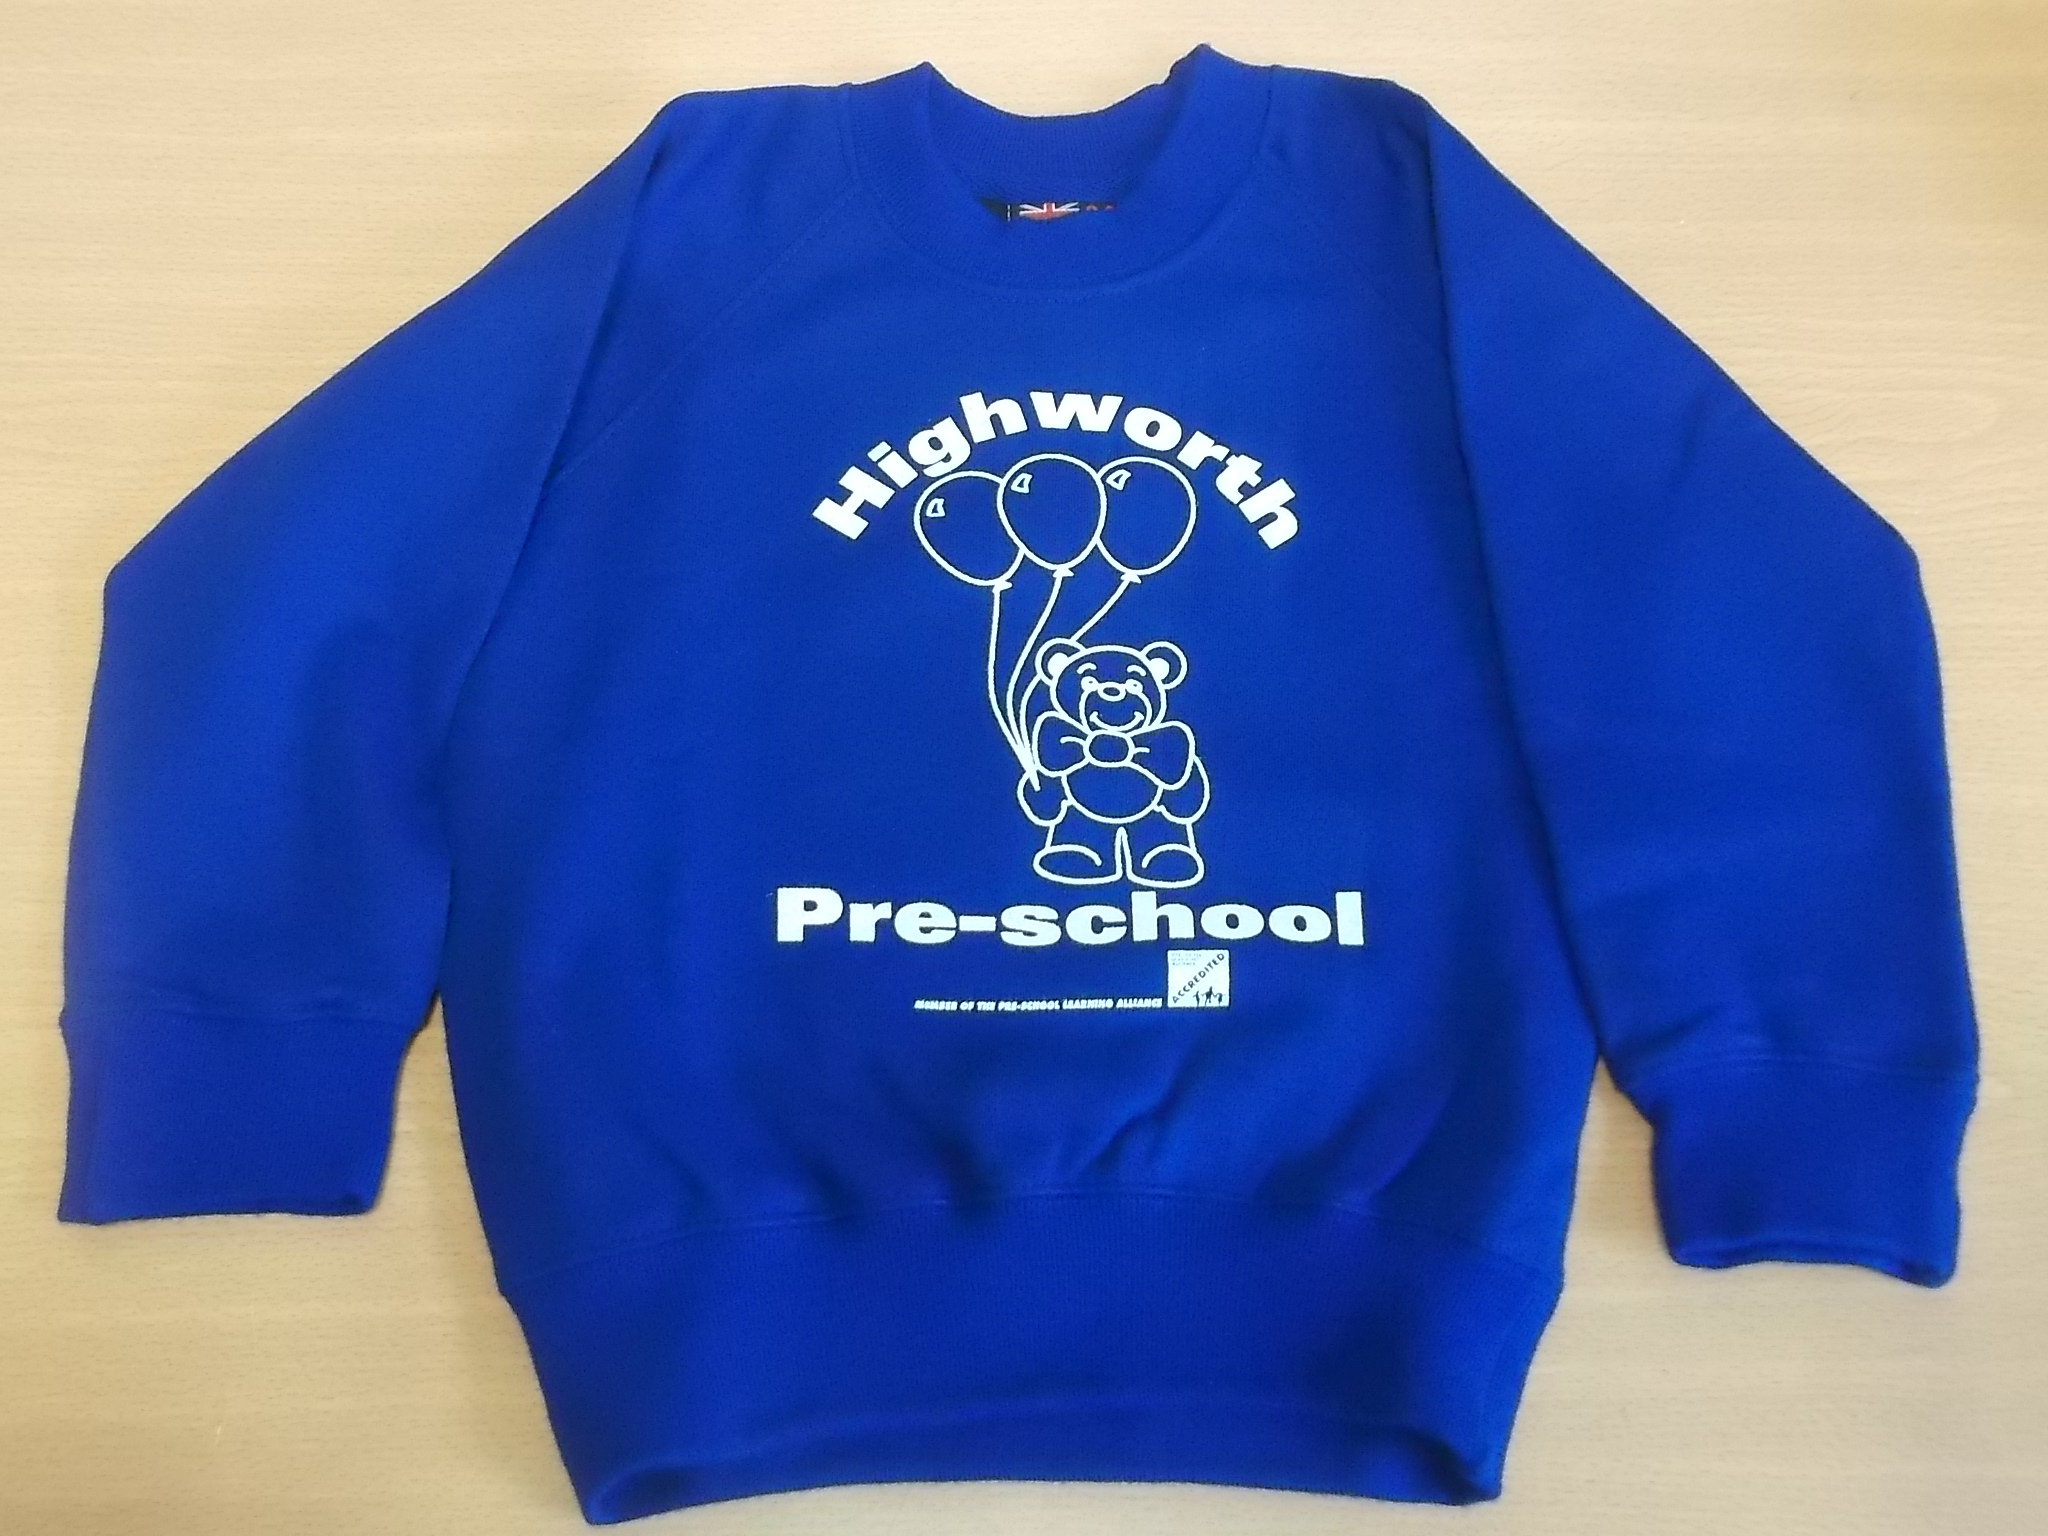 Blue Highworth Pre-School Jumper